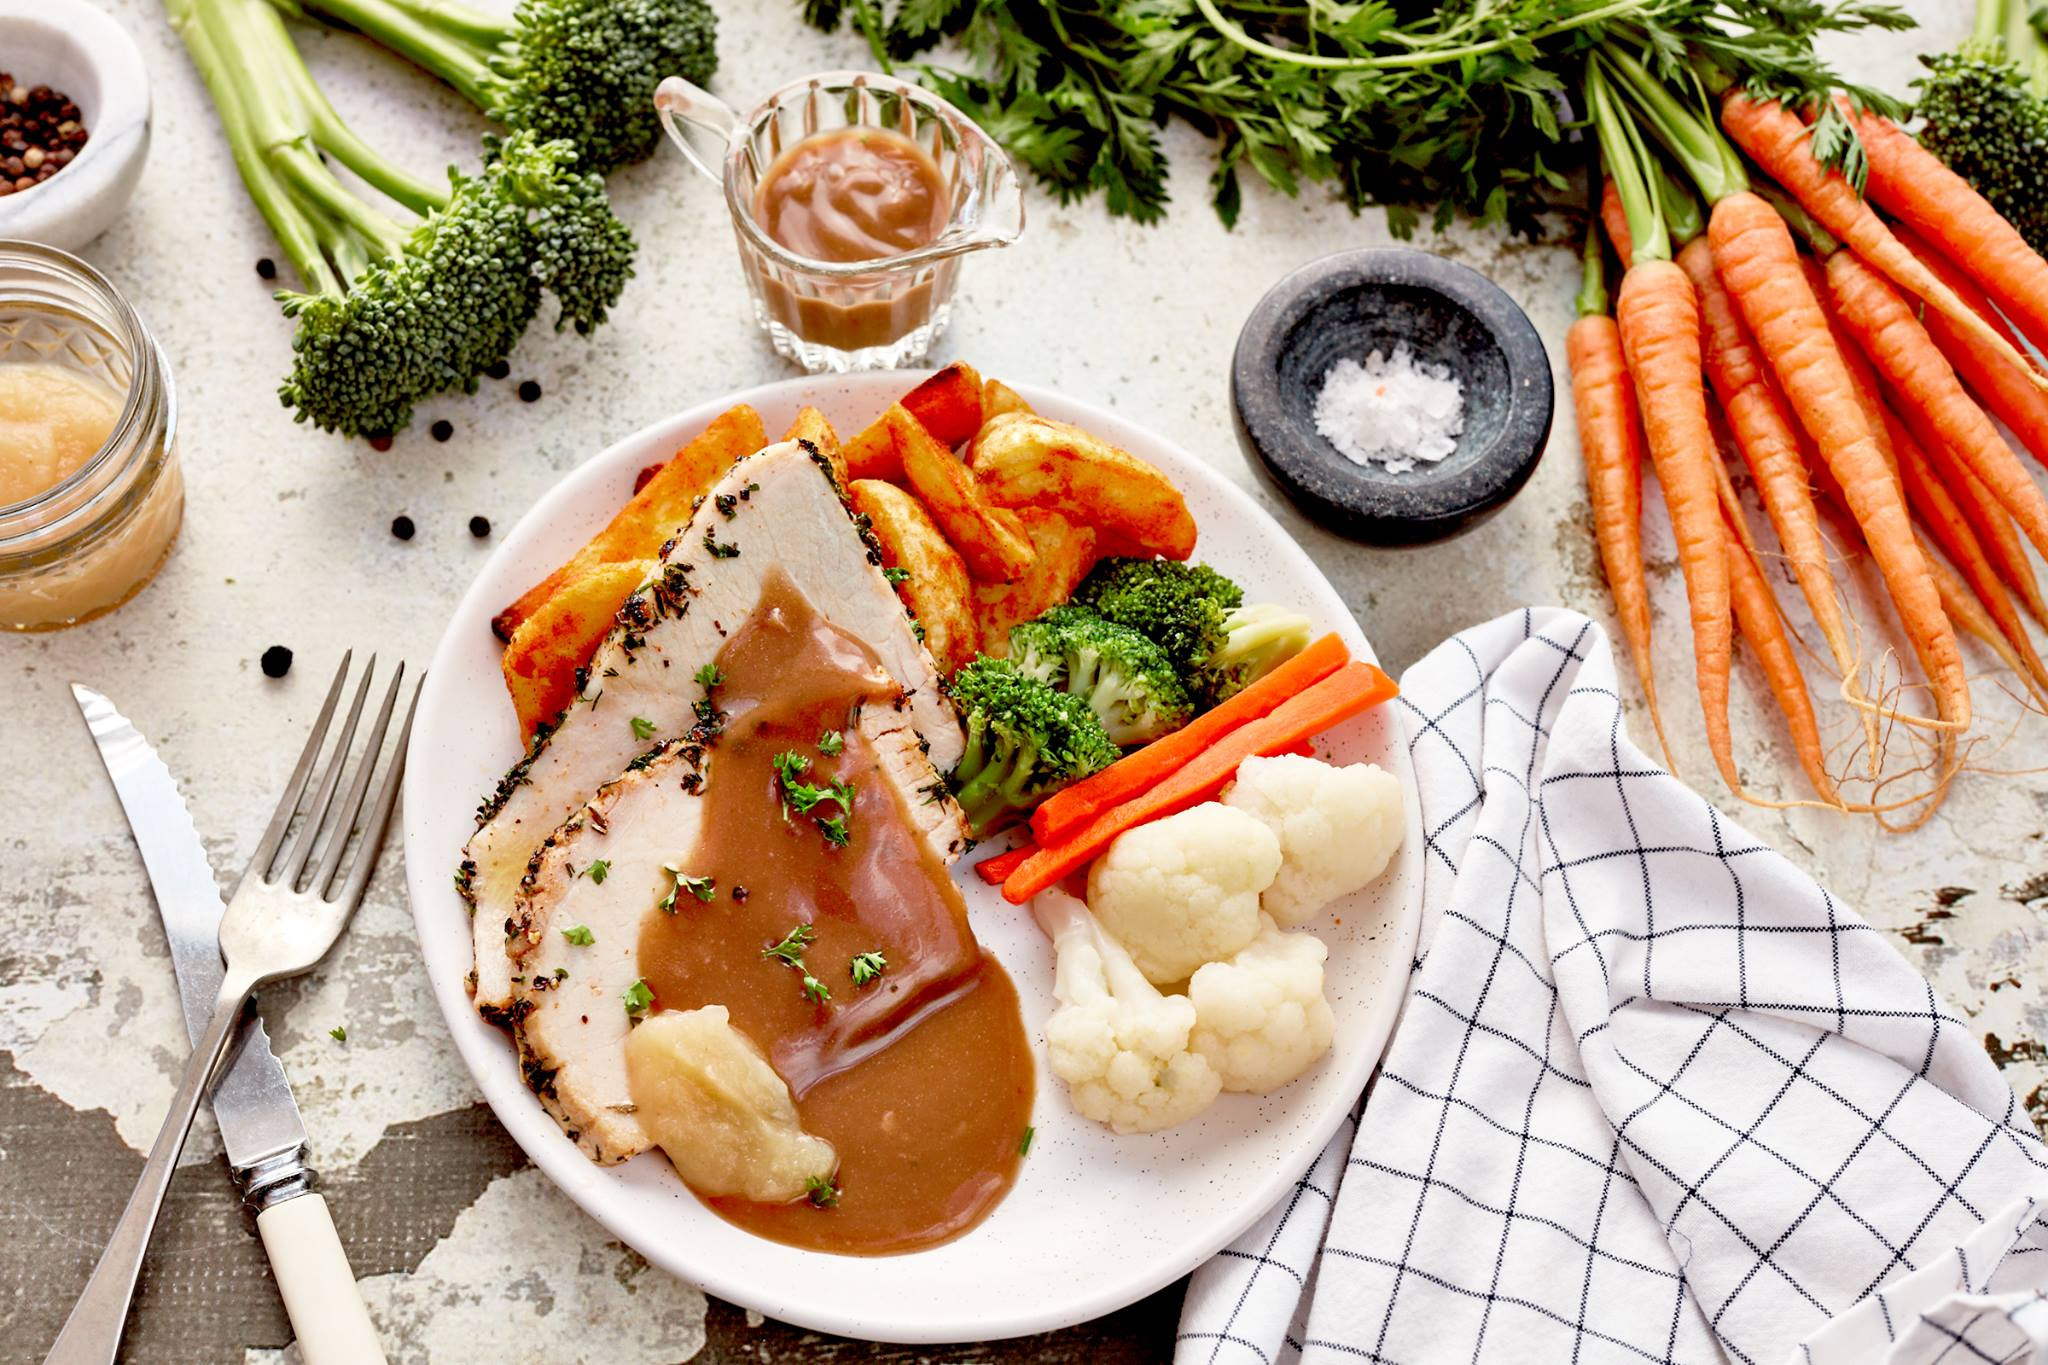 Gourmet Thanksgiving Dinner Delivered  Australia's Ready Made Home Delivery Meal Services